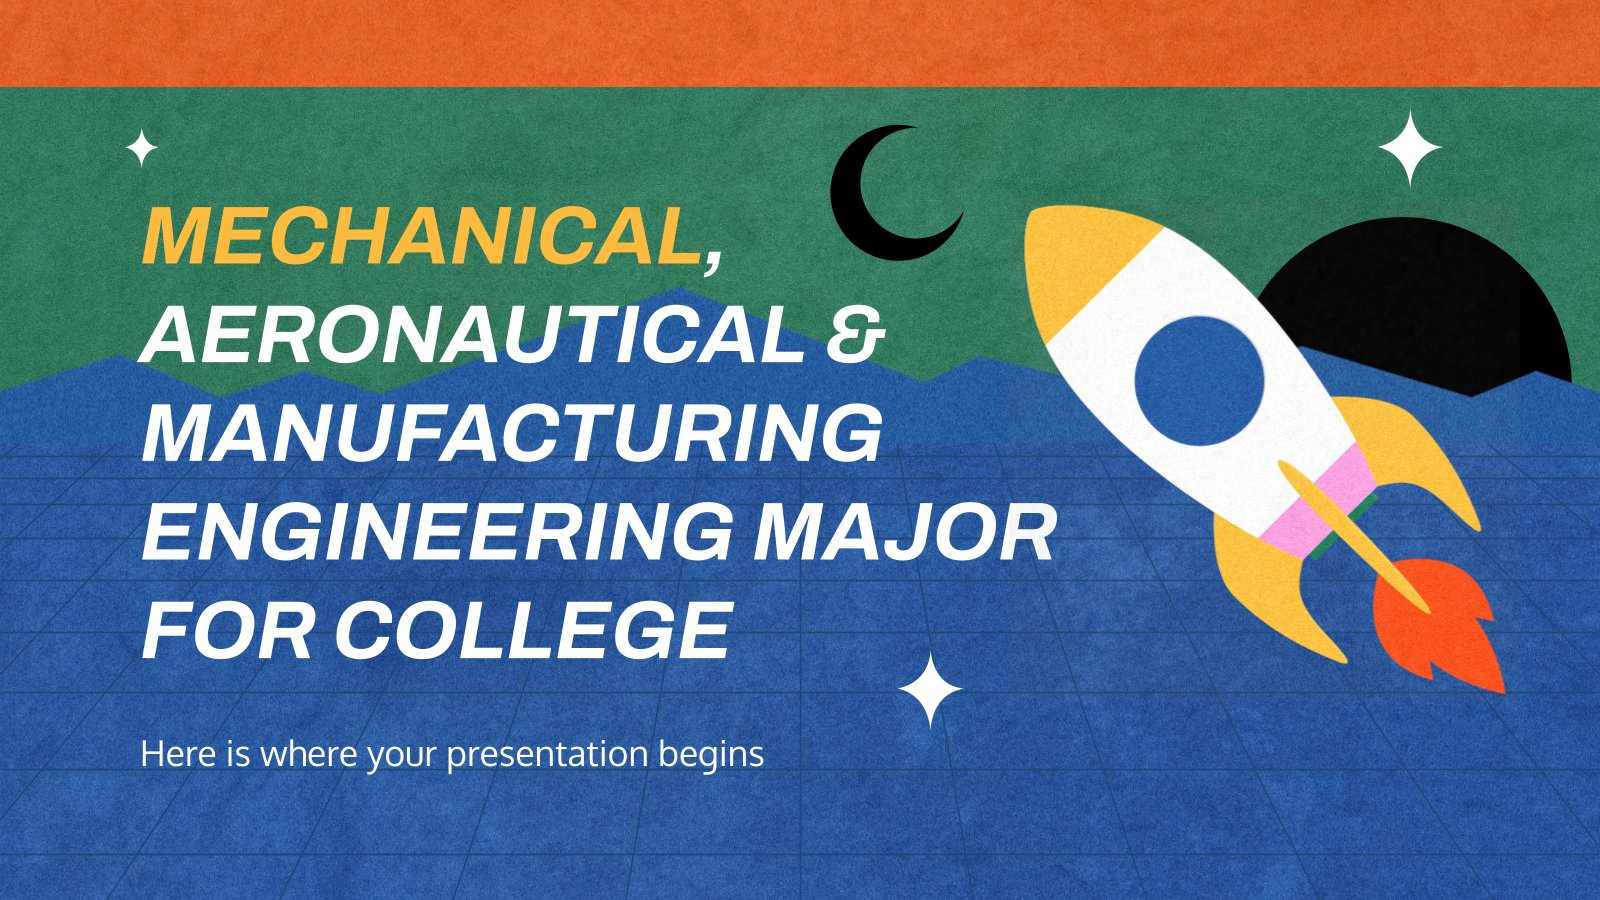 Mechanical, Aeronautical & Manufacturing Engineering Major for College presentation template